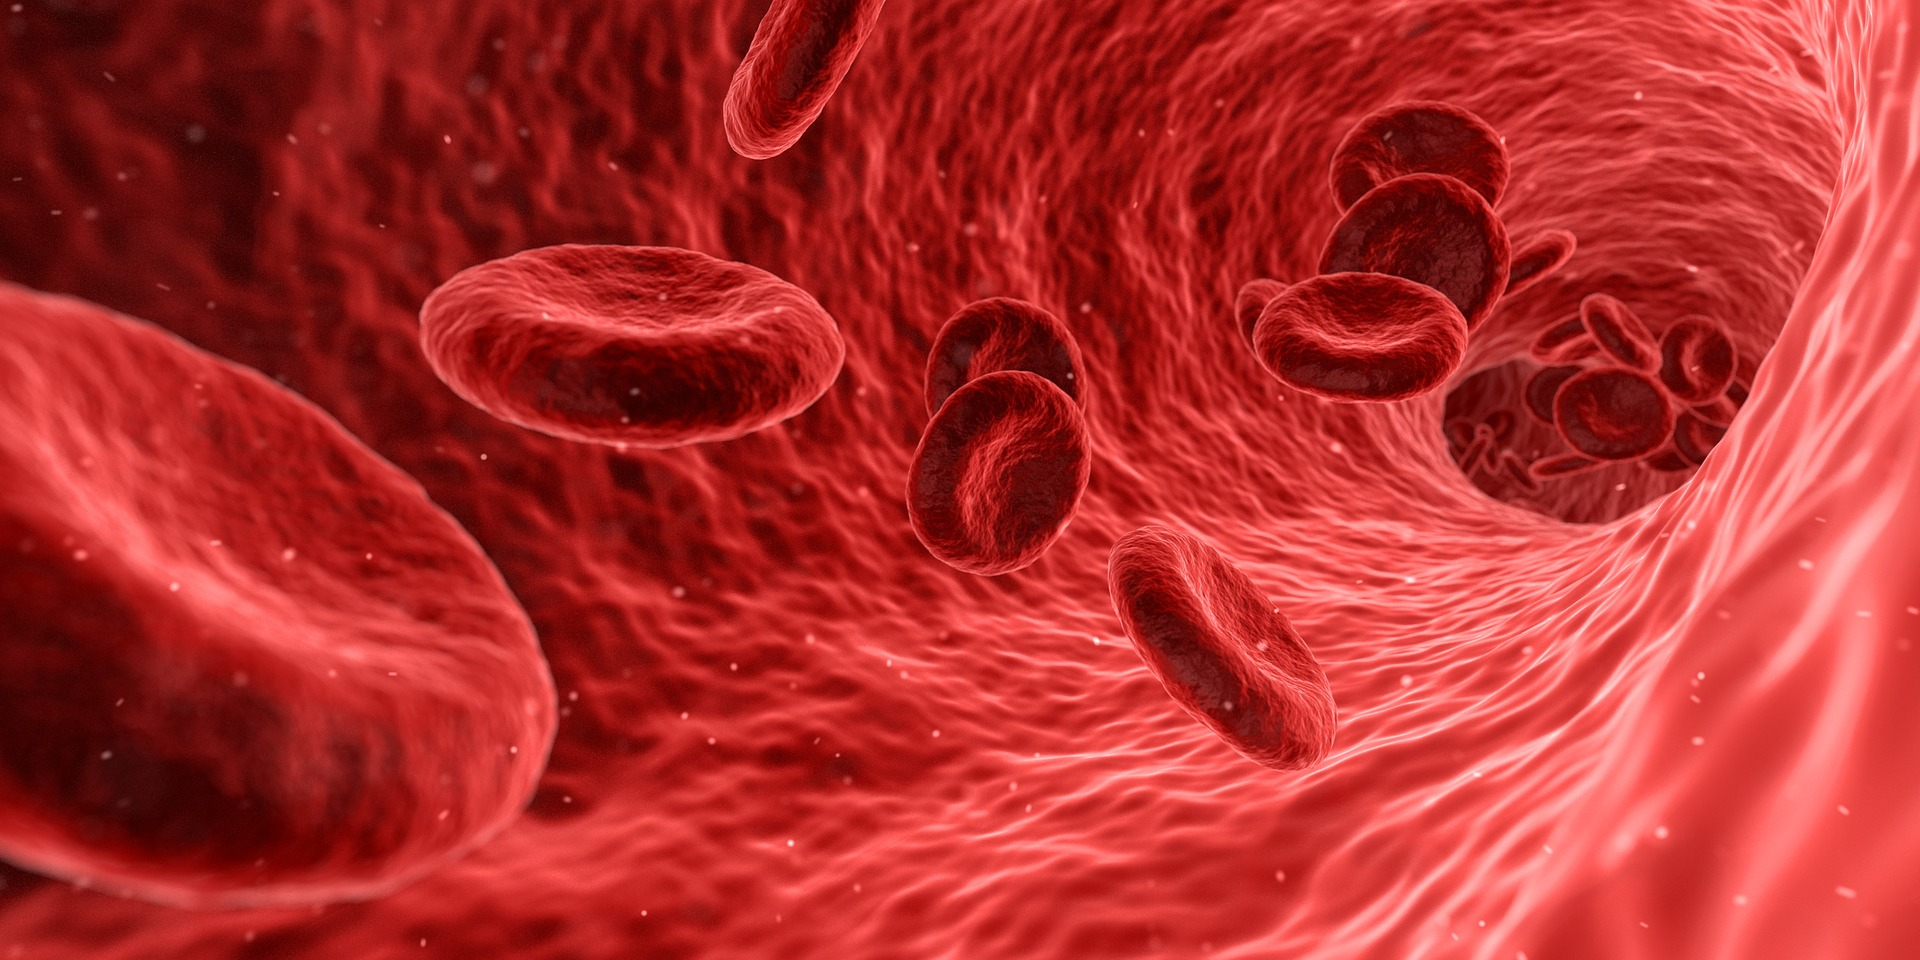 Red_Blood_Cell.jpg